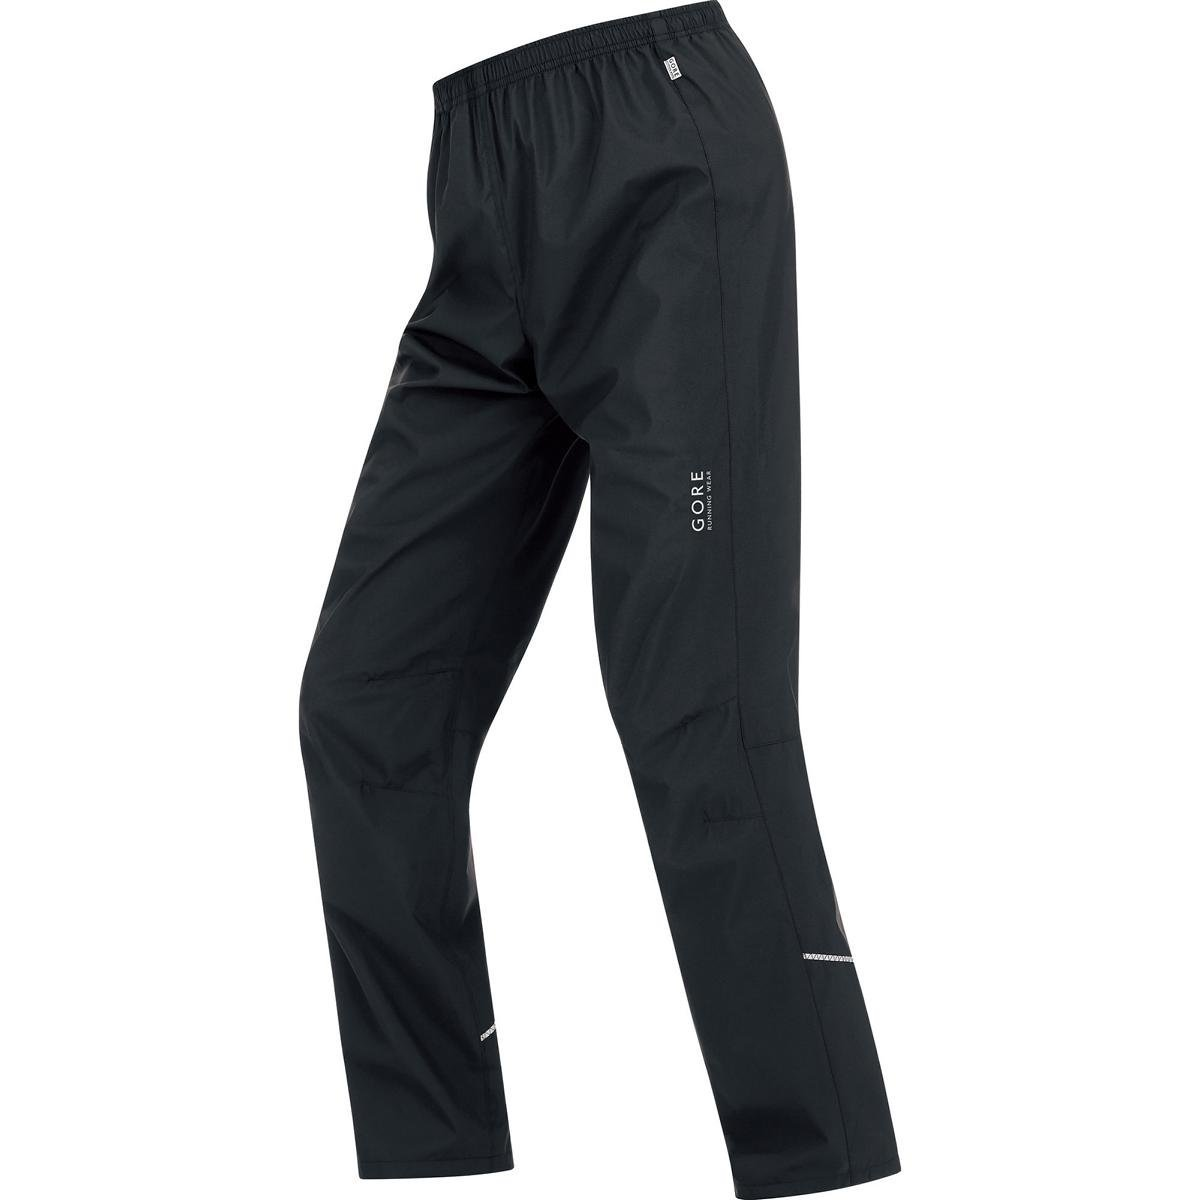 Gore Essential AS Running Pants - AW16 - Large - Black by Gore (Image #1)